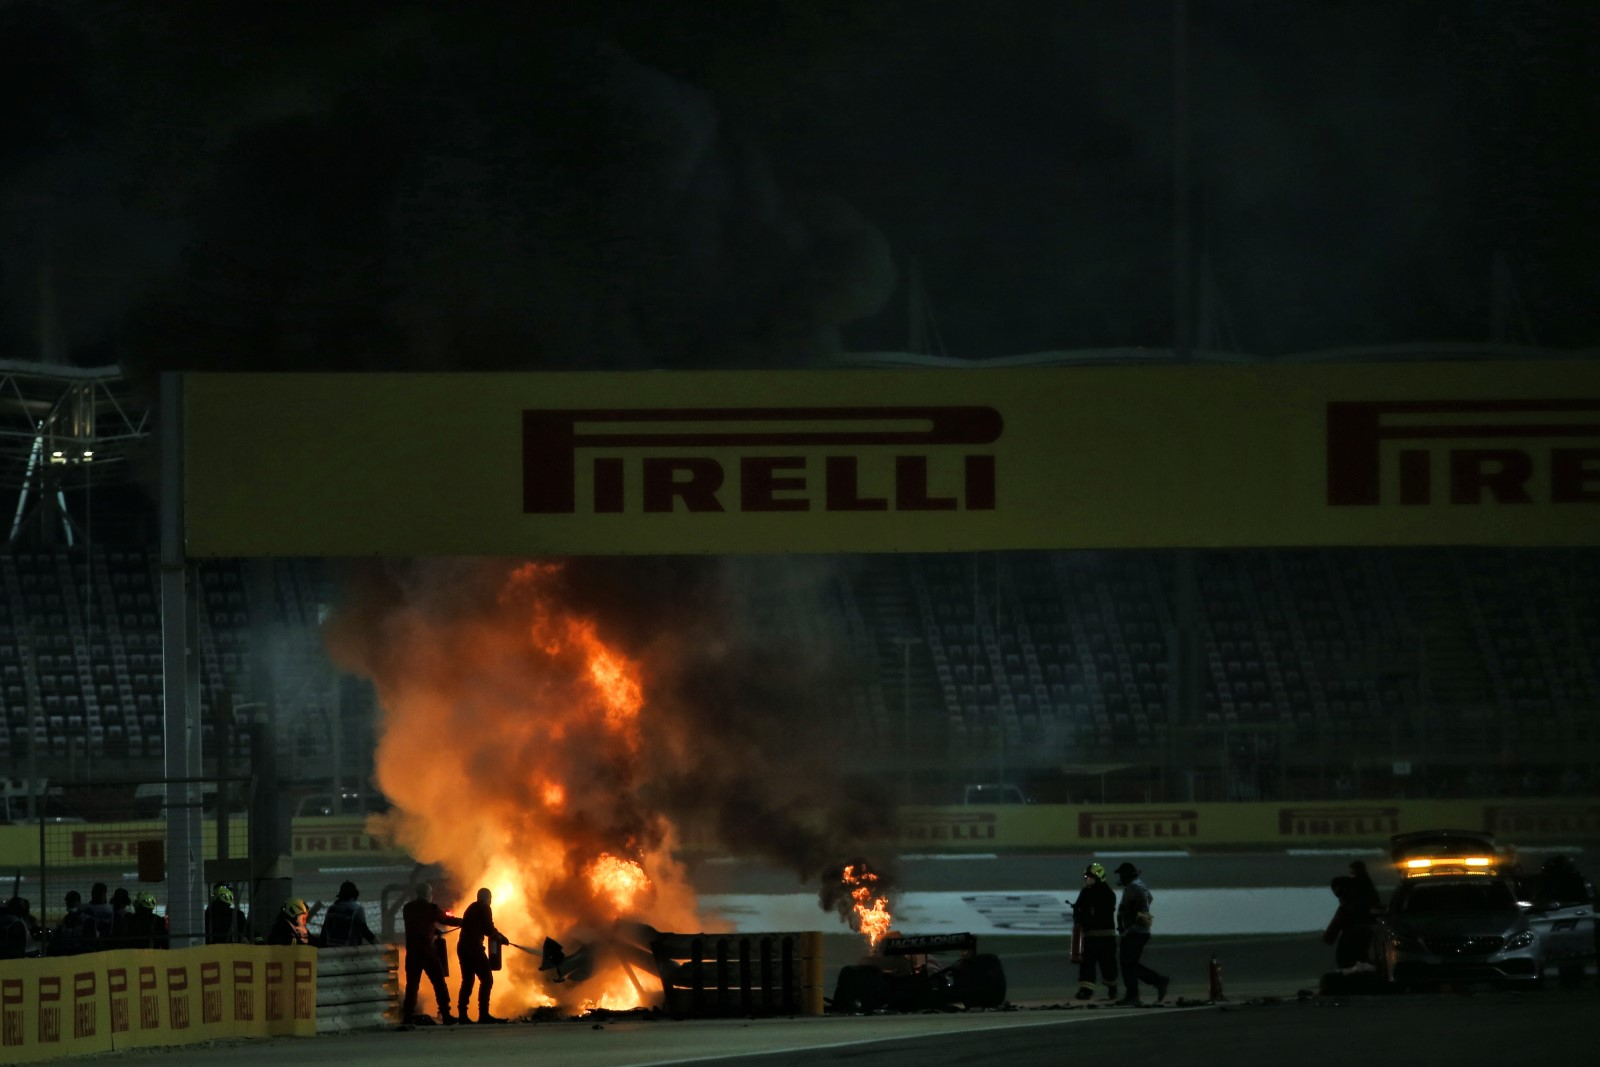 Romain Grosjean out of next race after escaping fiery crash